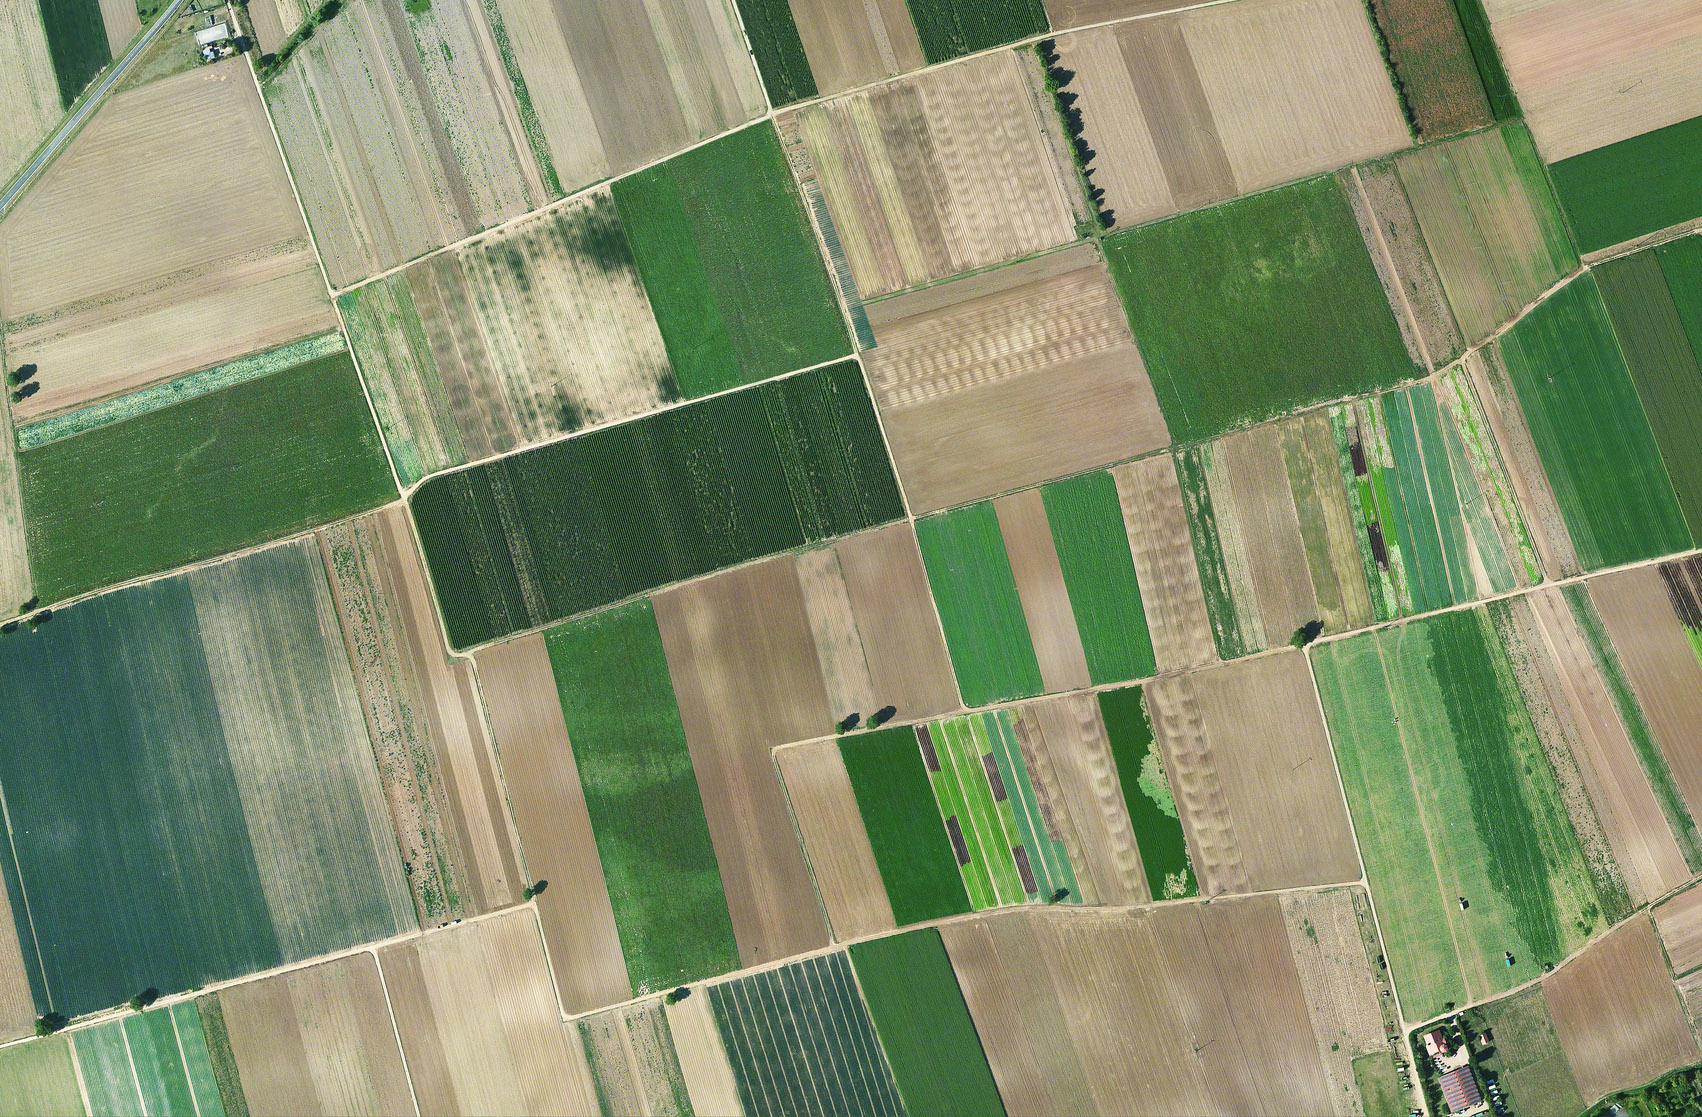 Aerial mapping of fields